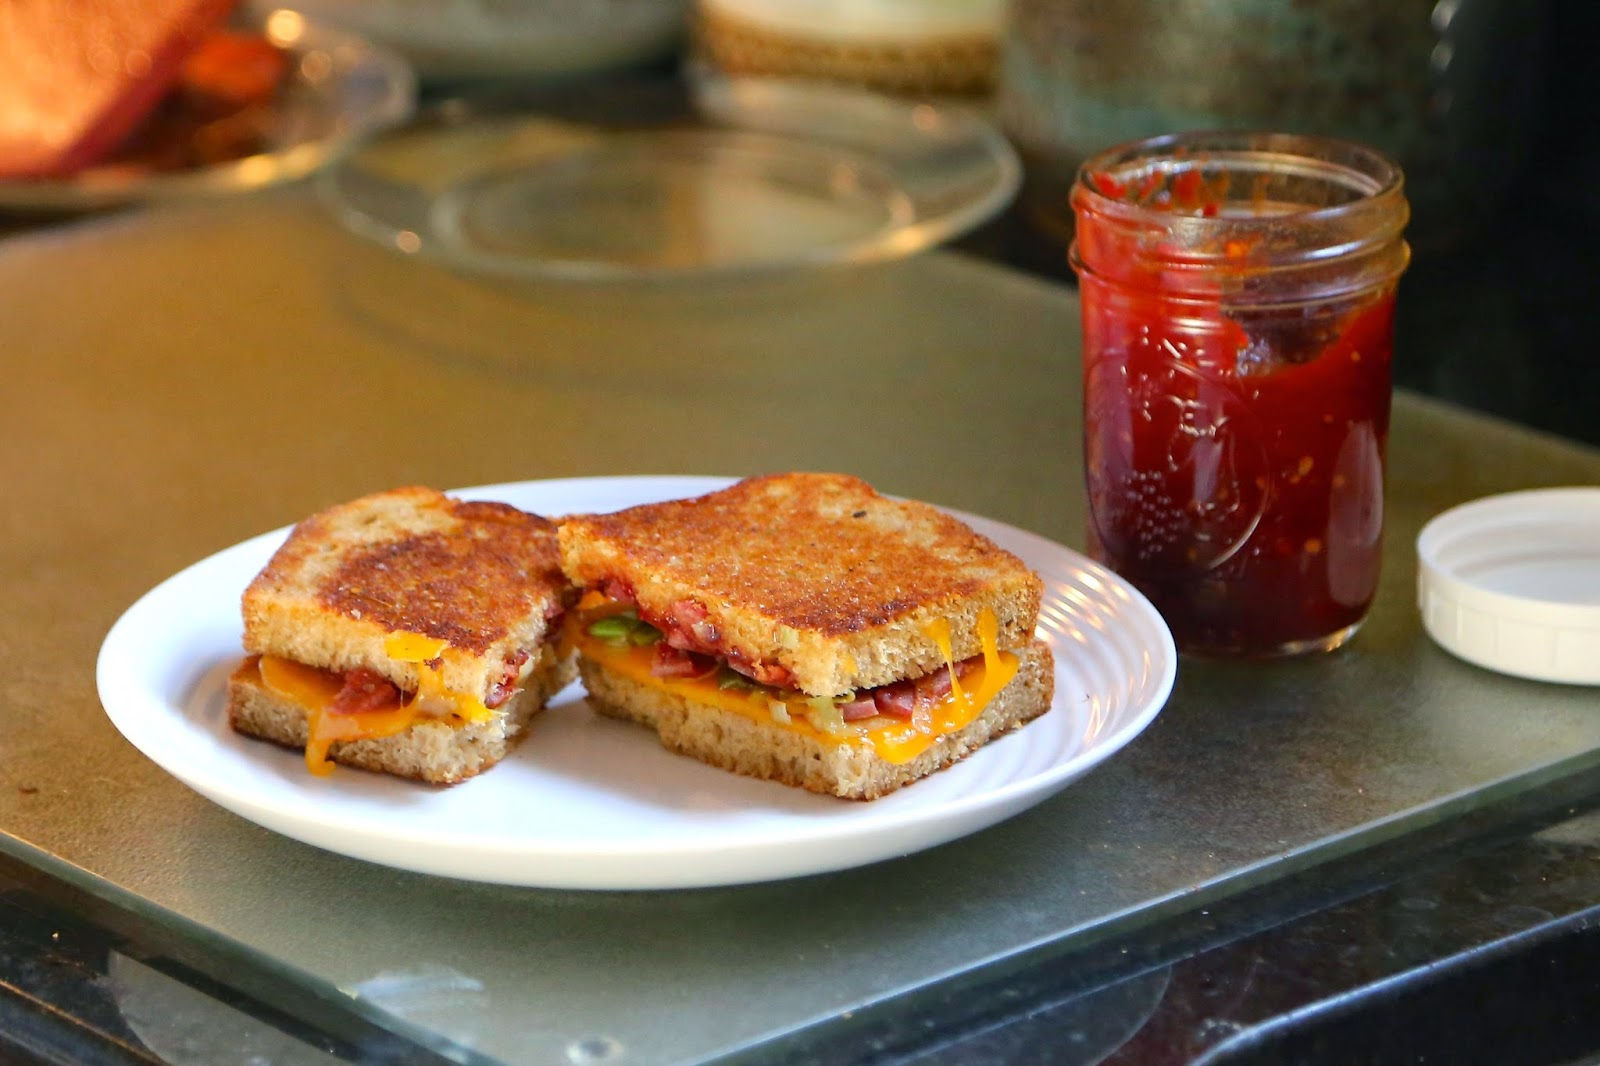 Grilled Cheese with Country Ham, Leeks, and Tomato Jam | Farm Fresh Feasts